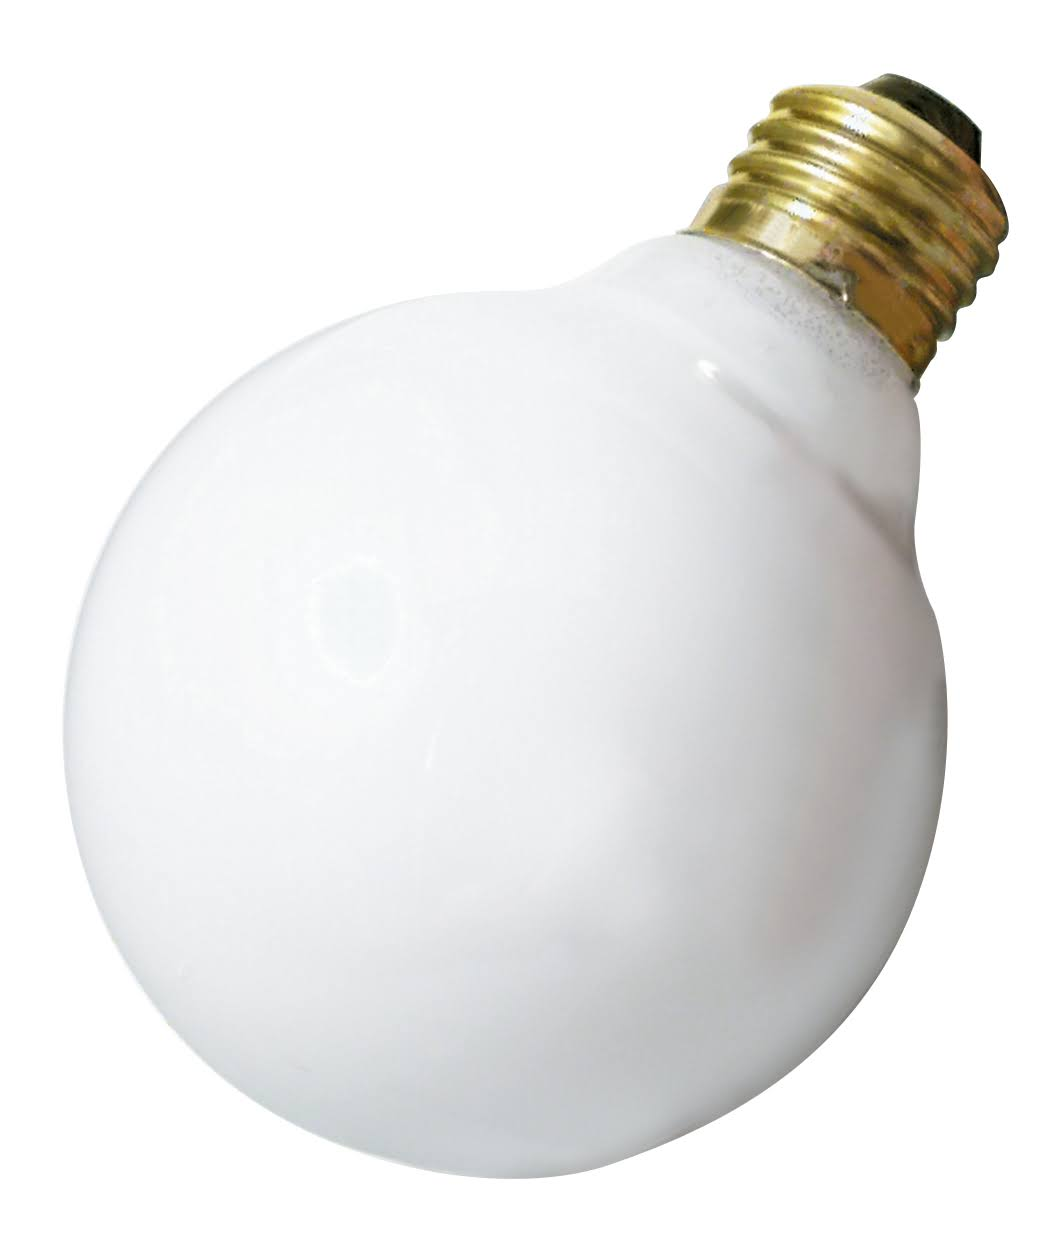 Satco Incandescent Globe Light Bulb - White, Medium, 40W